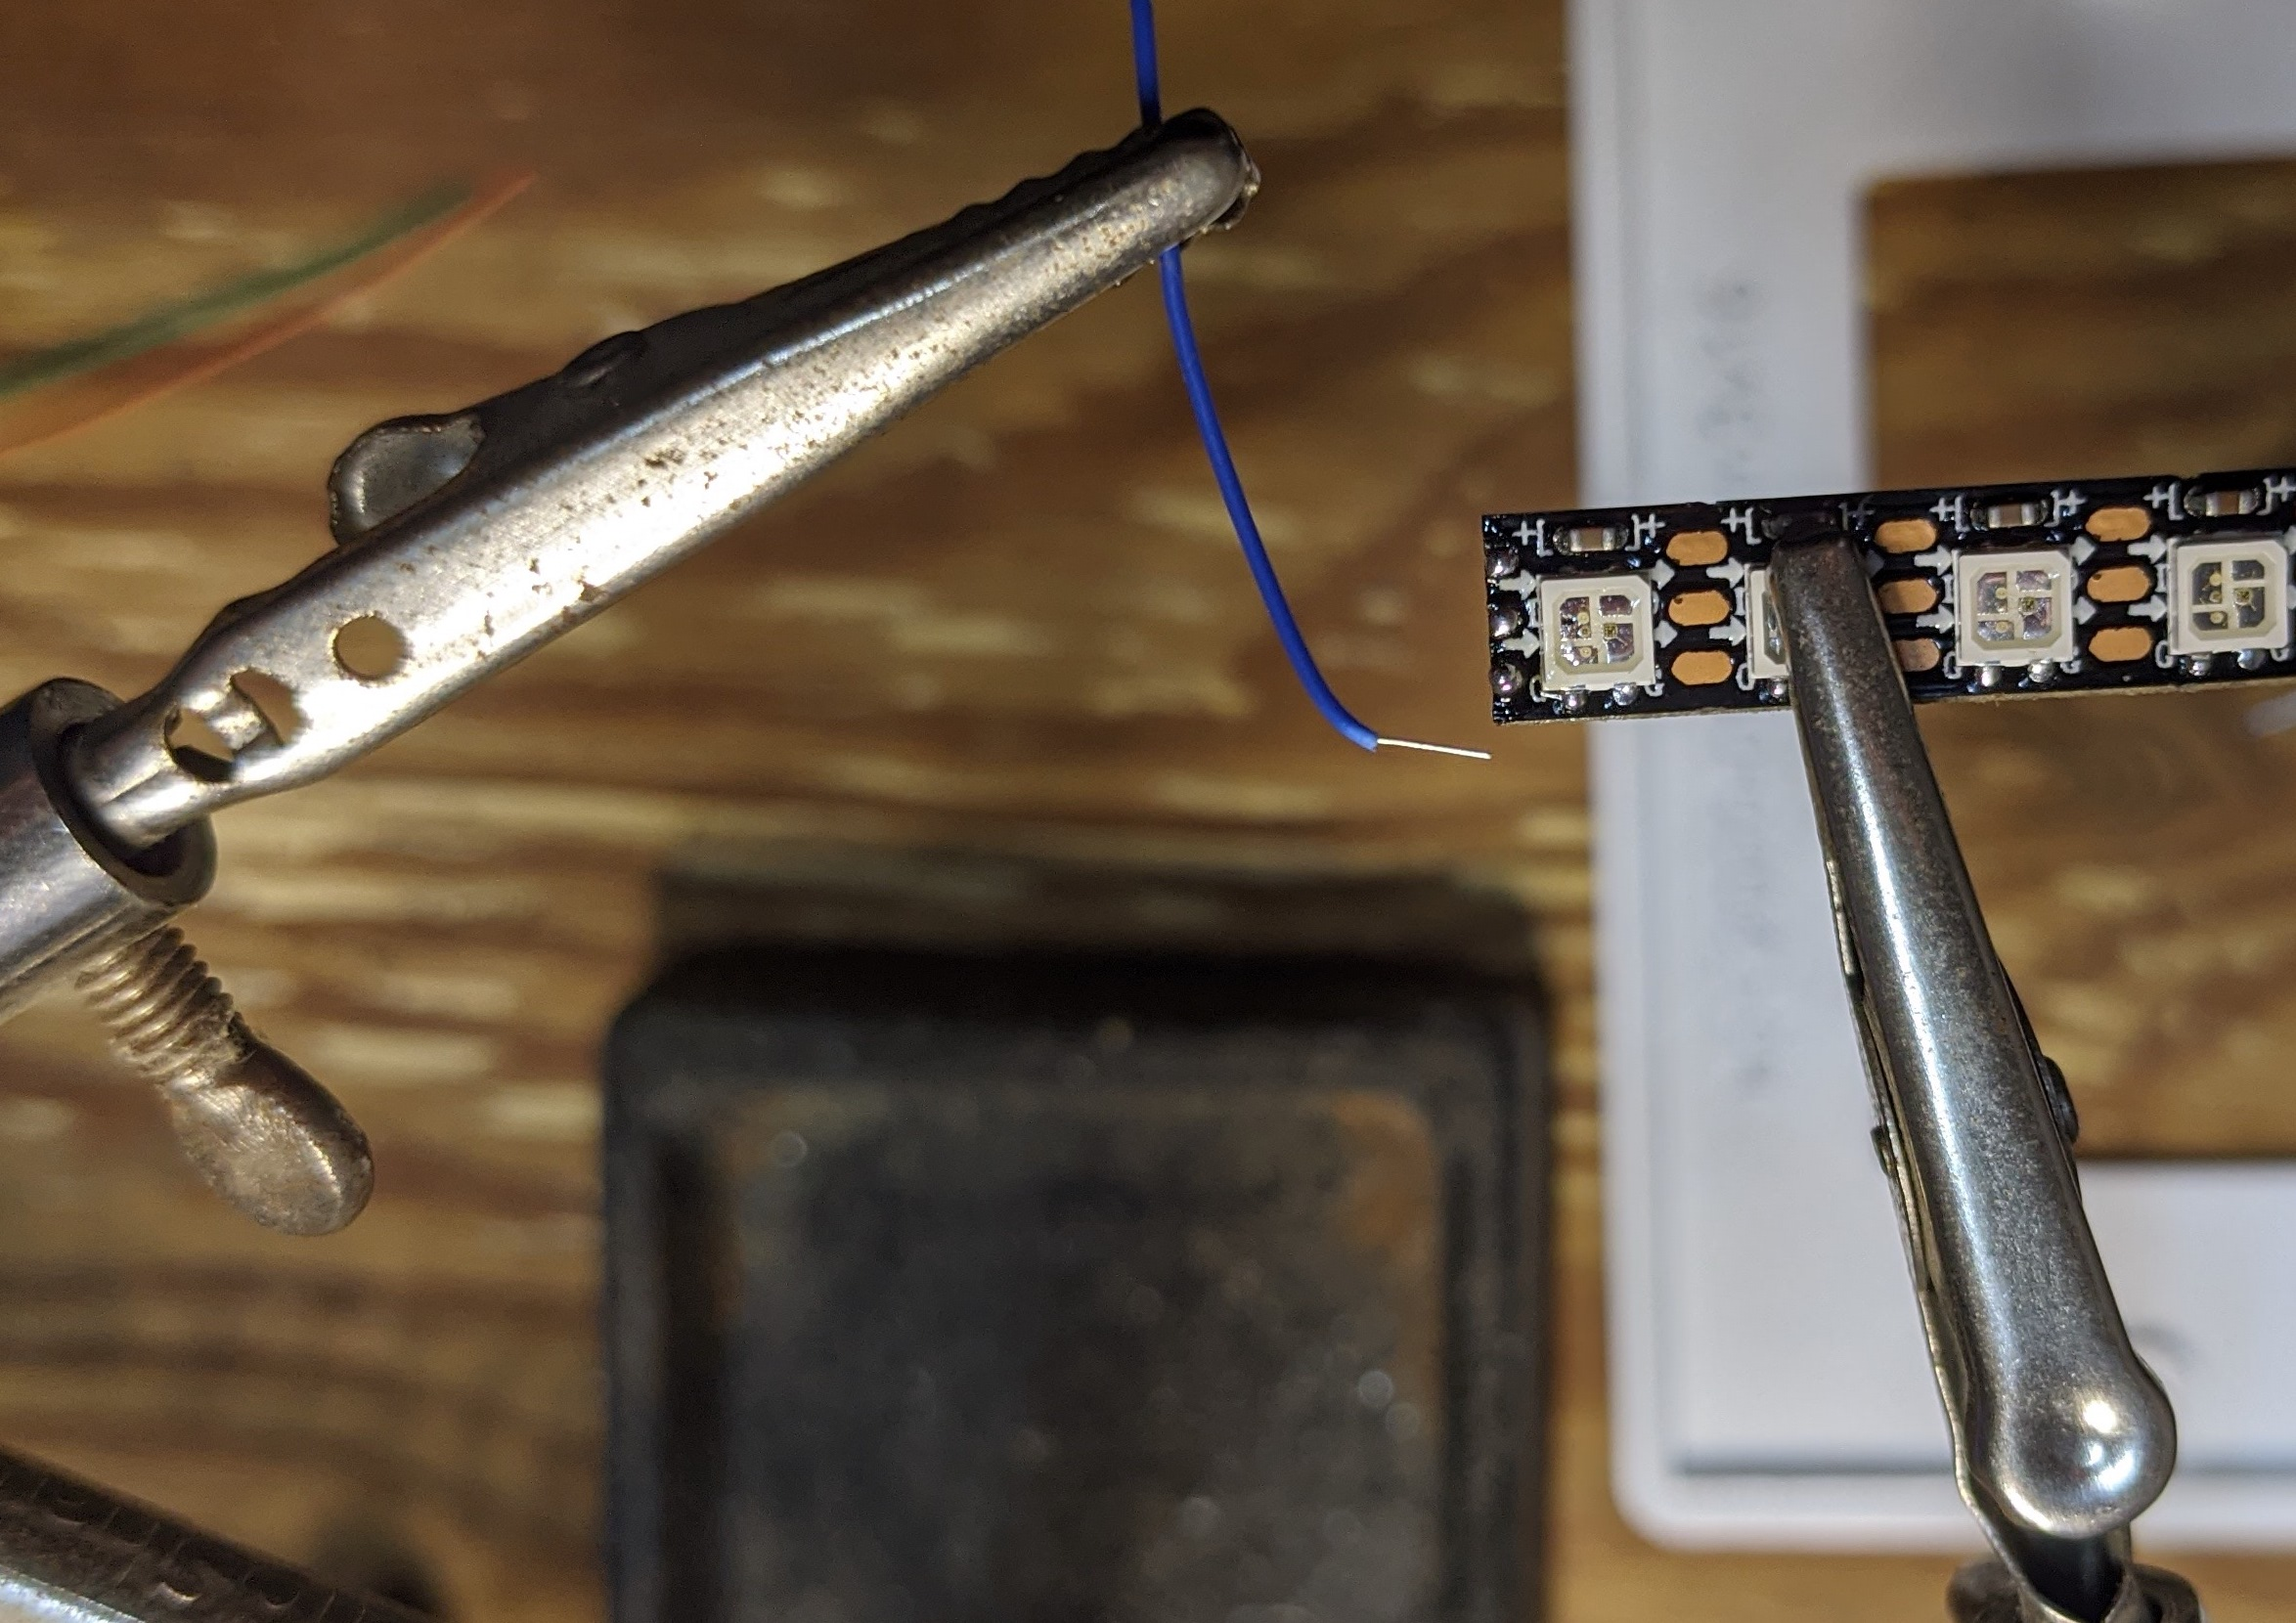 picture showing wire lined up with one solder pad on the LED tape